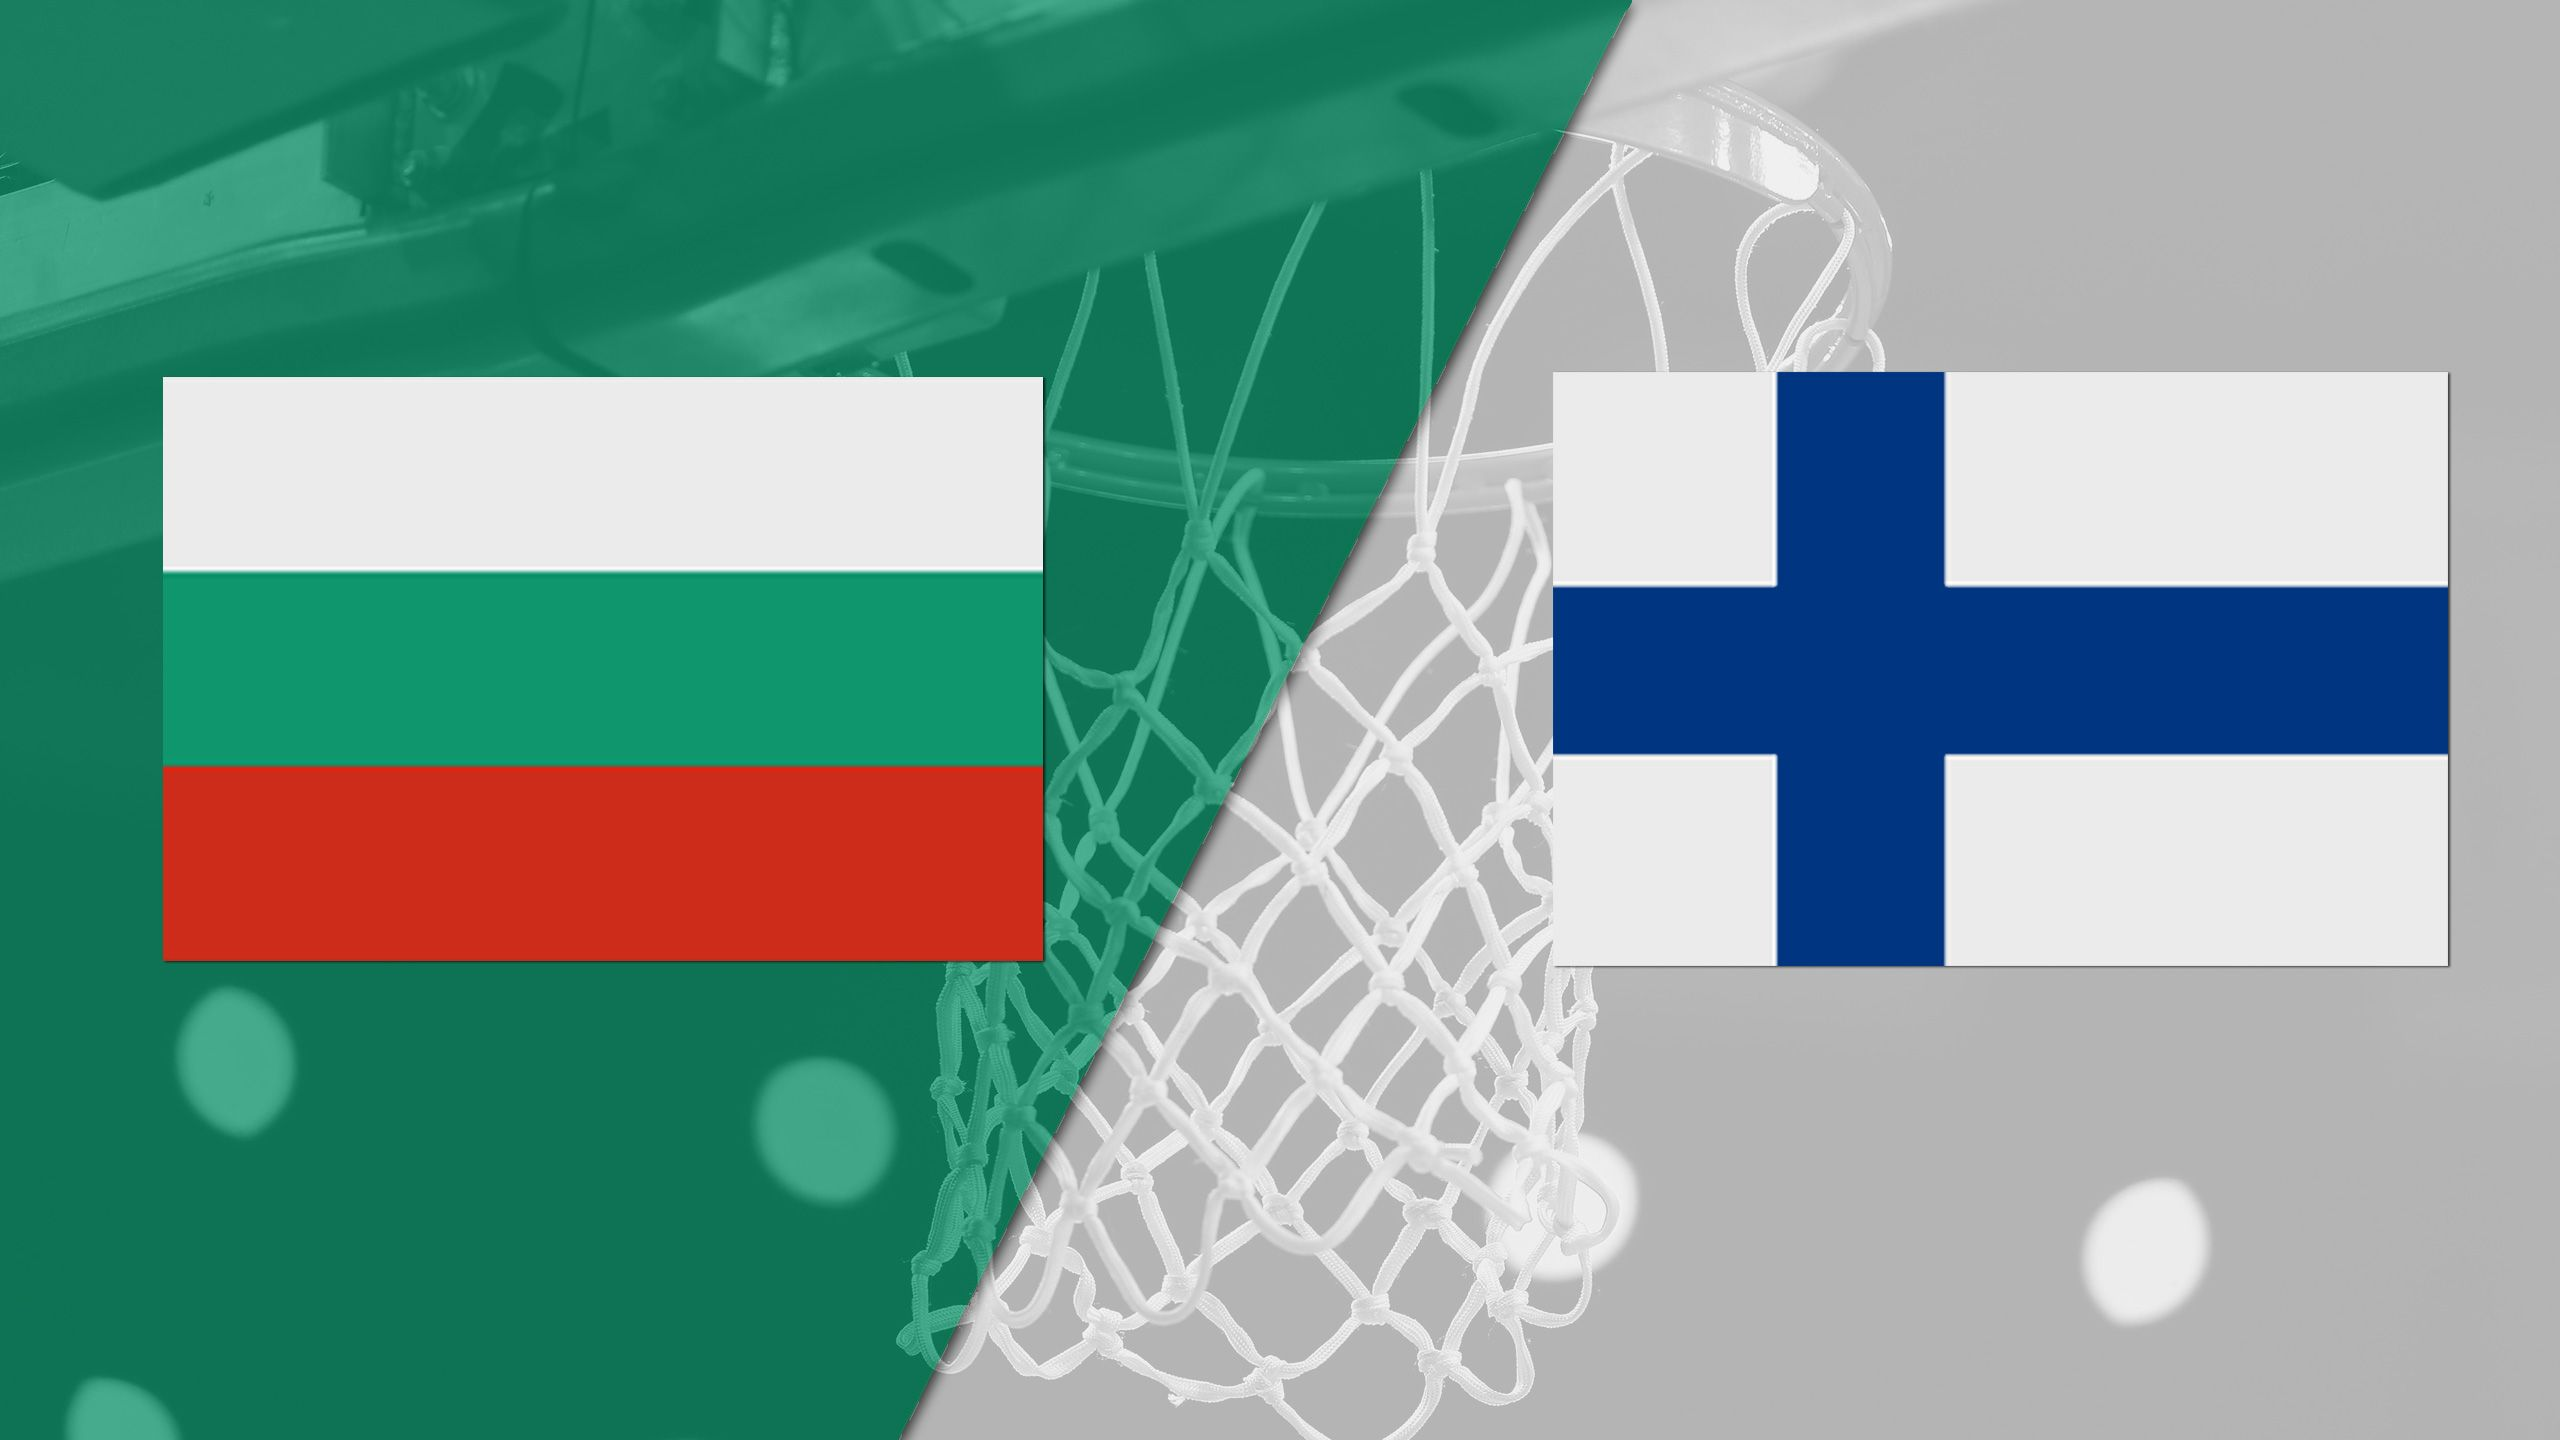 Bulgaria vs. Finland (FIBA World Cup 2019 Qualifier)